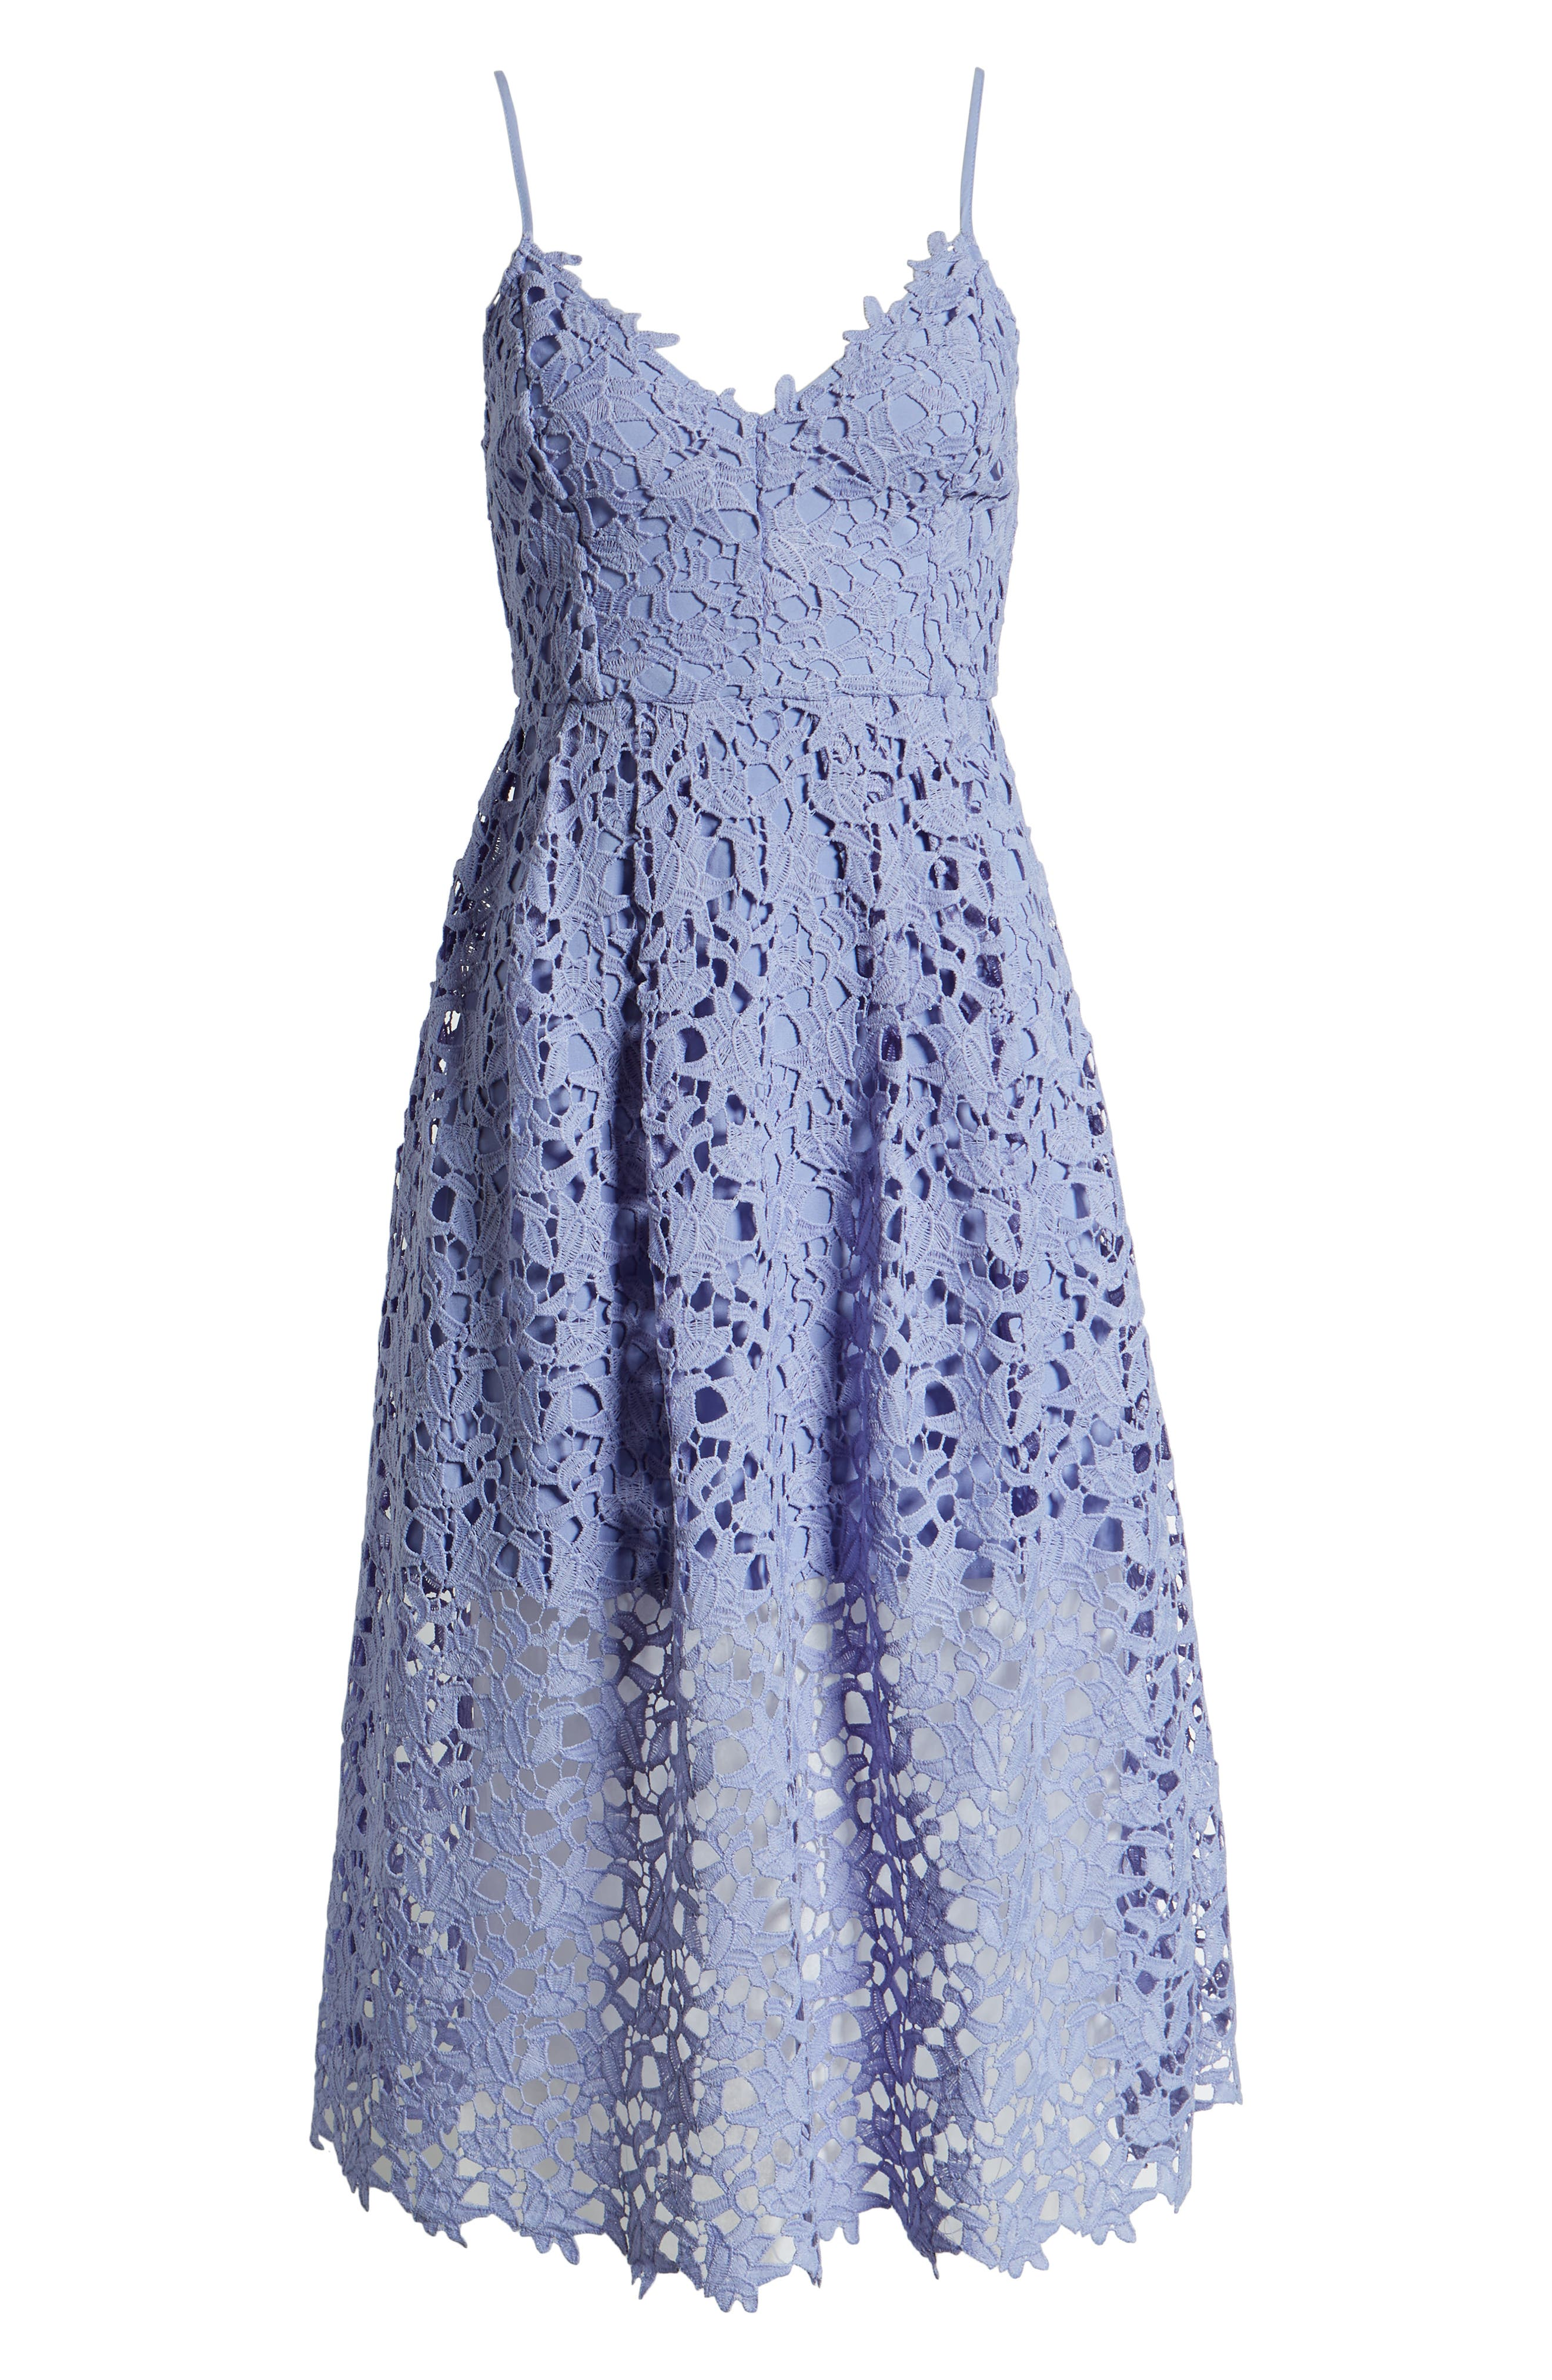 ASTR THE LABEL, Lace Midi Dress, Alternate thumbnail 7, color, LAVENDER